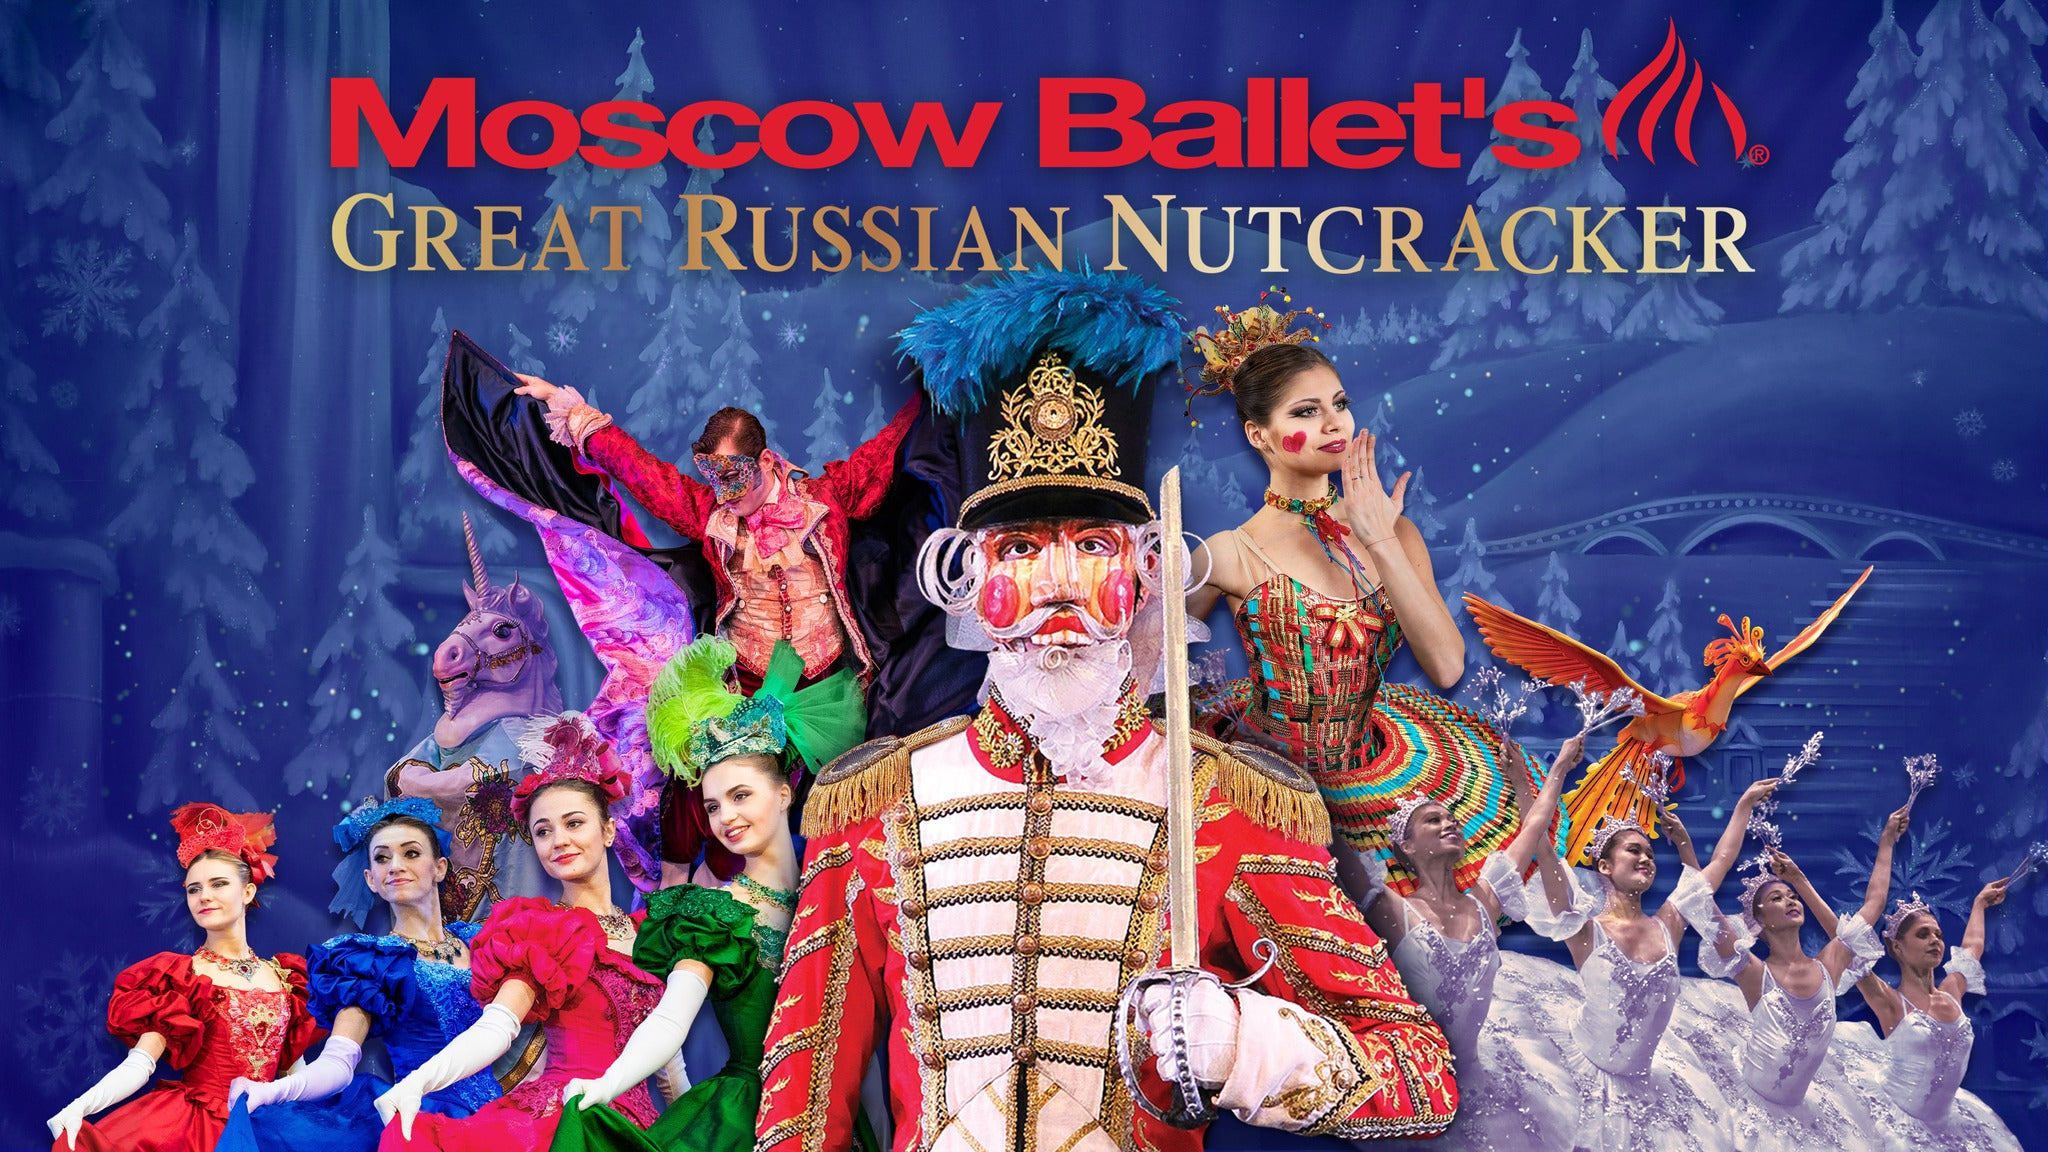 Moscow Ballet's Great Russian Nutcracker at Fargo Theatre